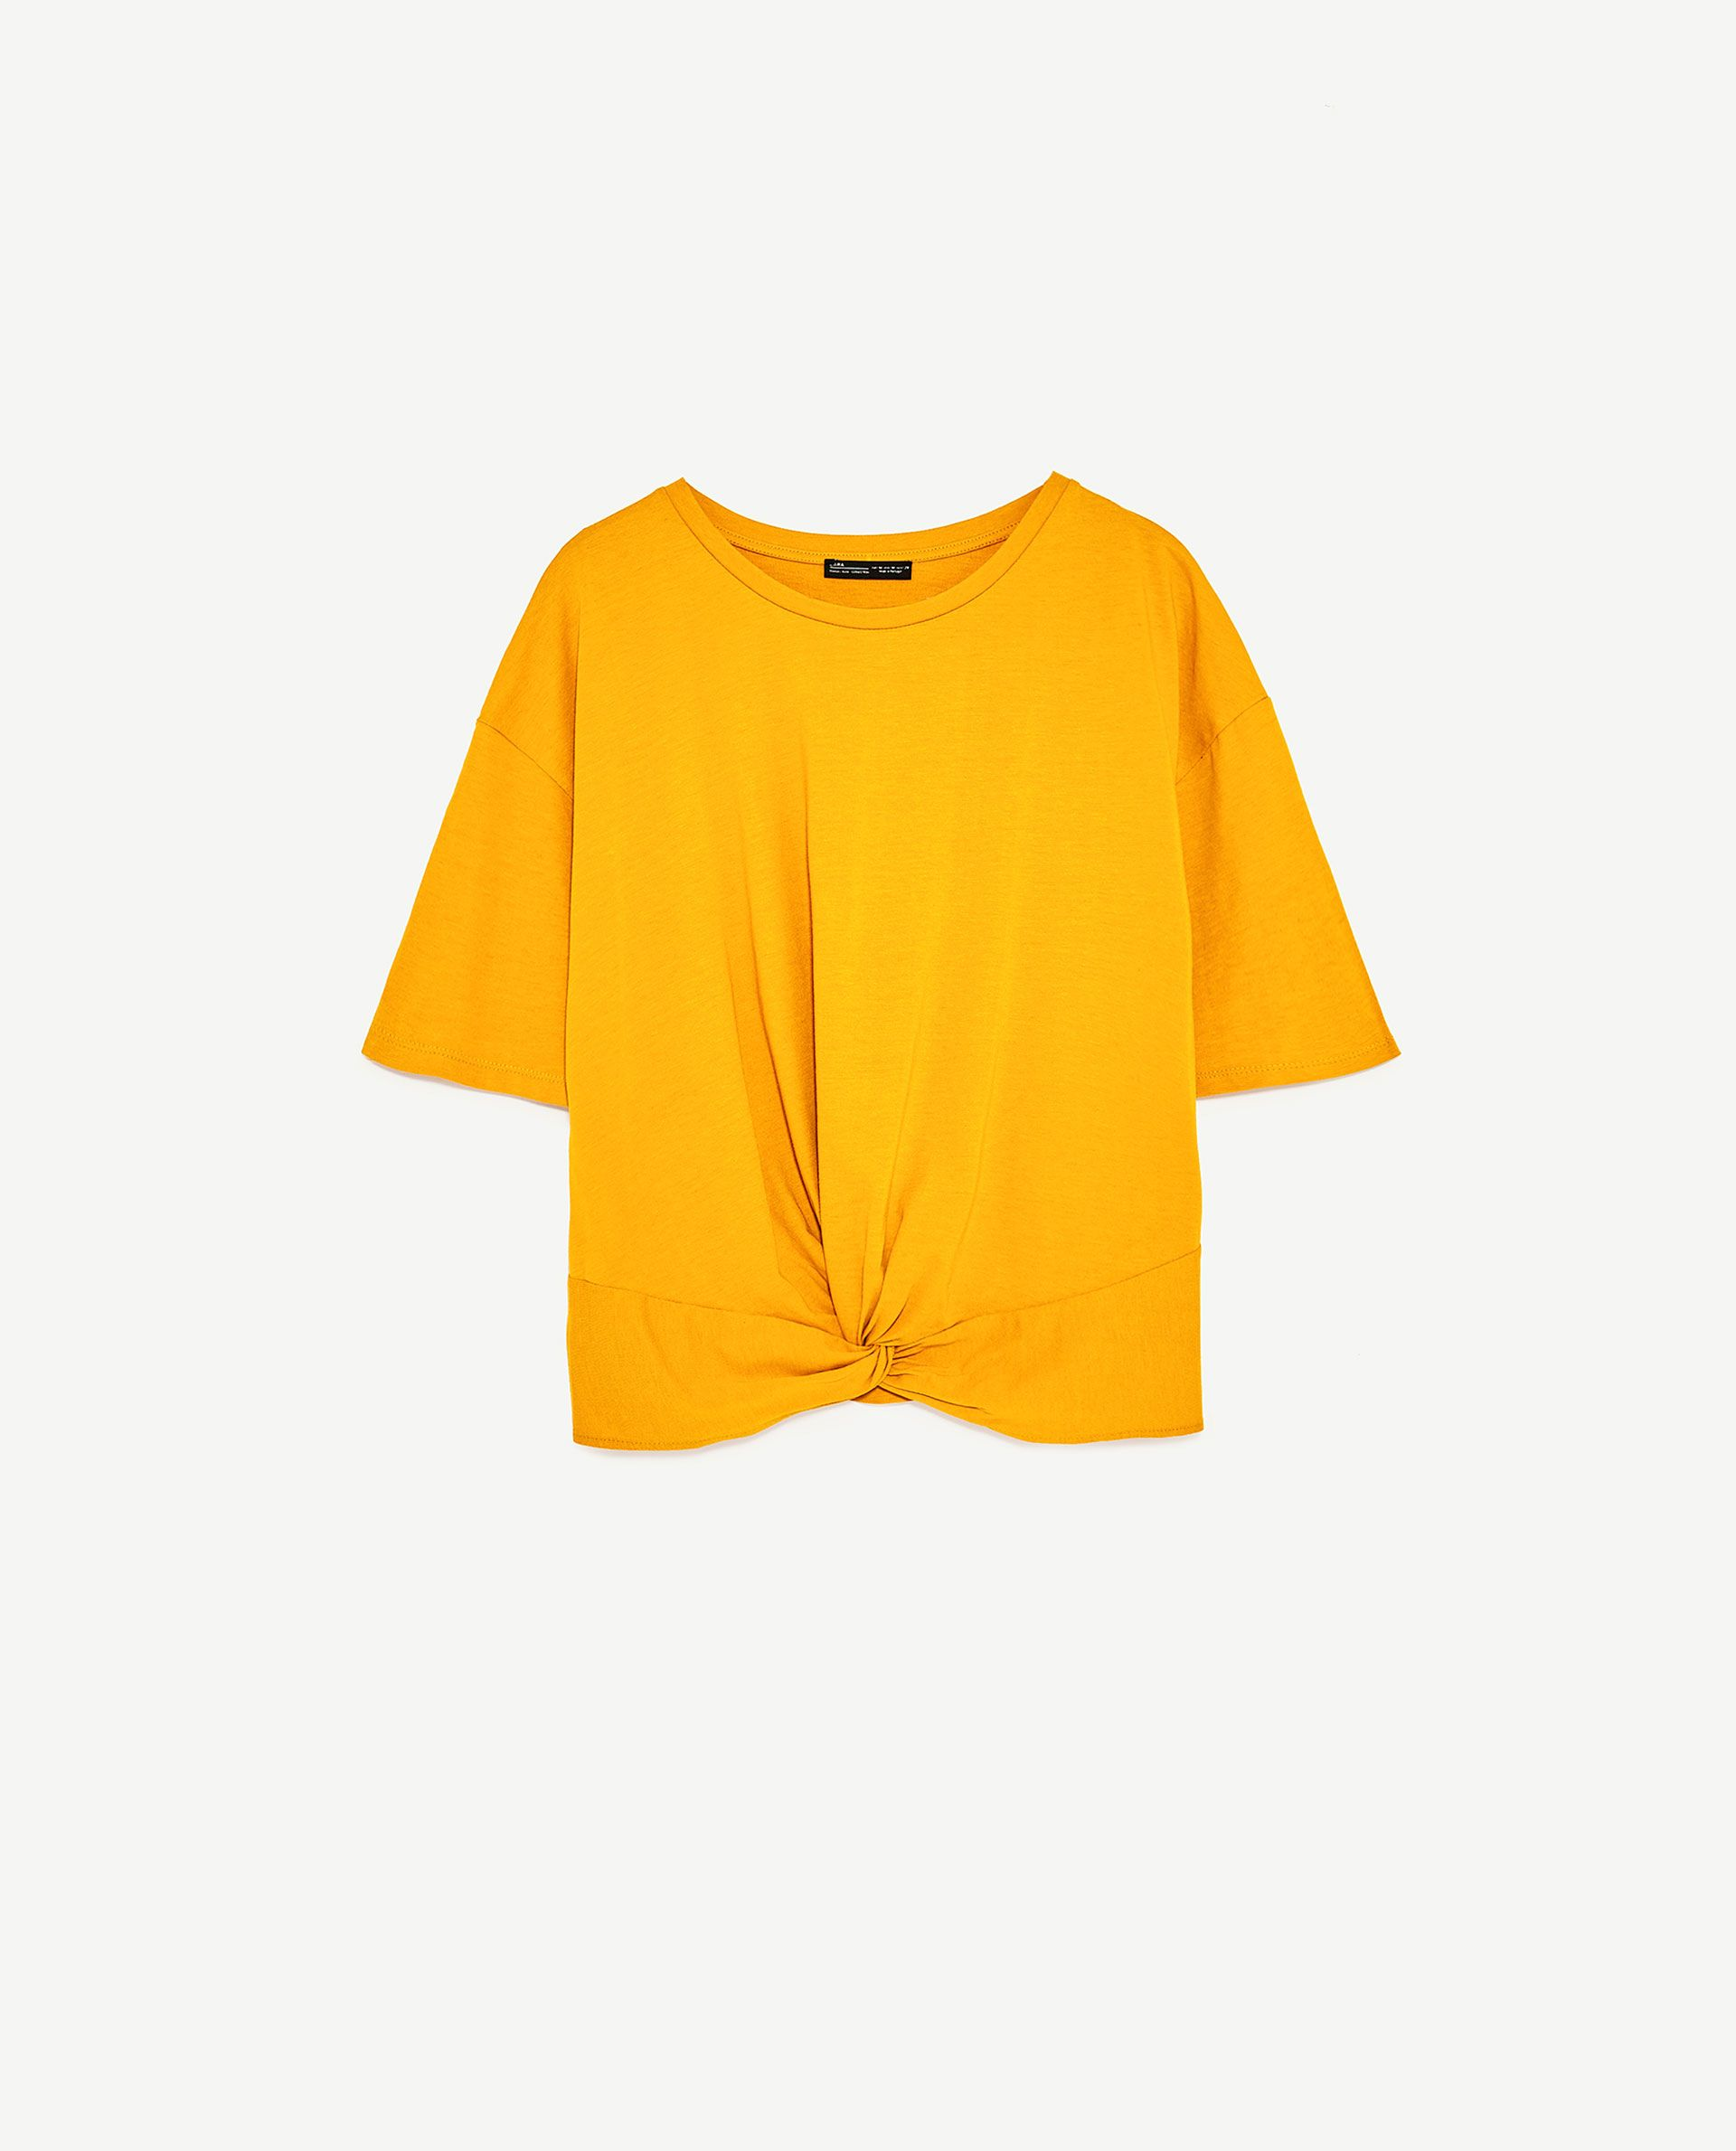 0f4481b3935 Image 8 of KNOTTED T-SHIRT from Zara Zara Shop